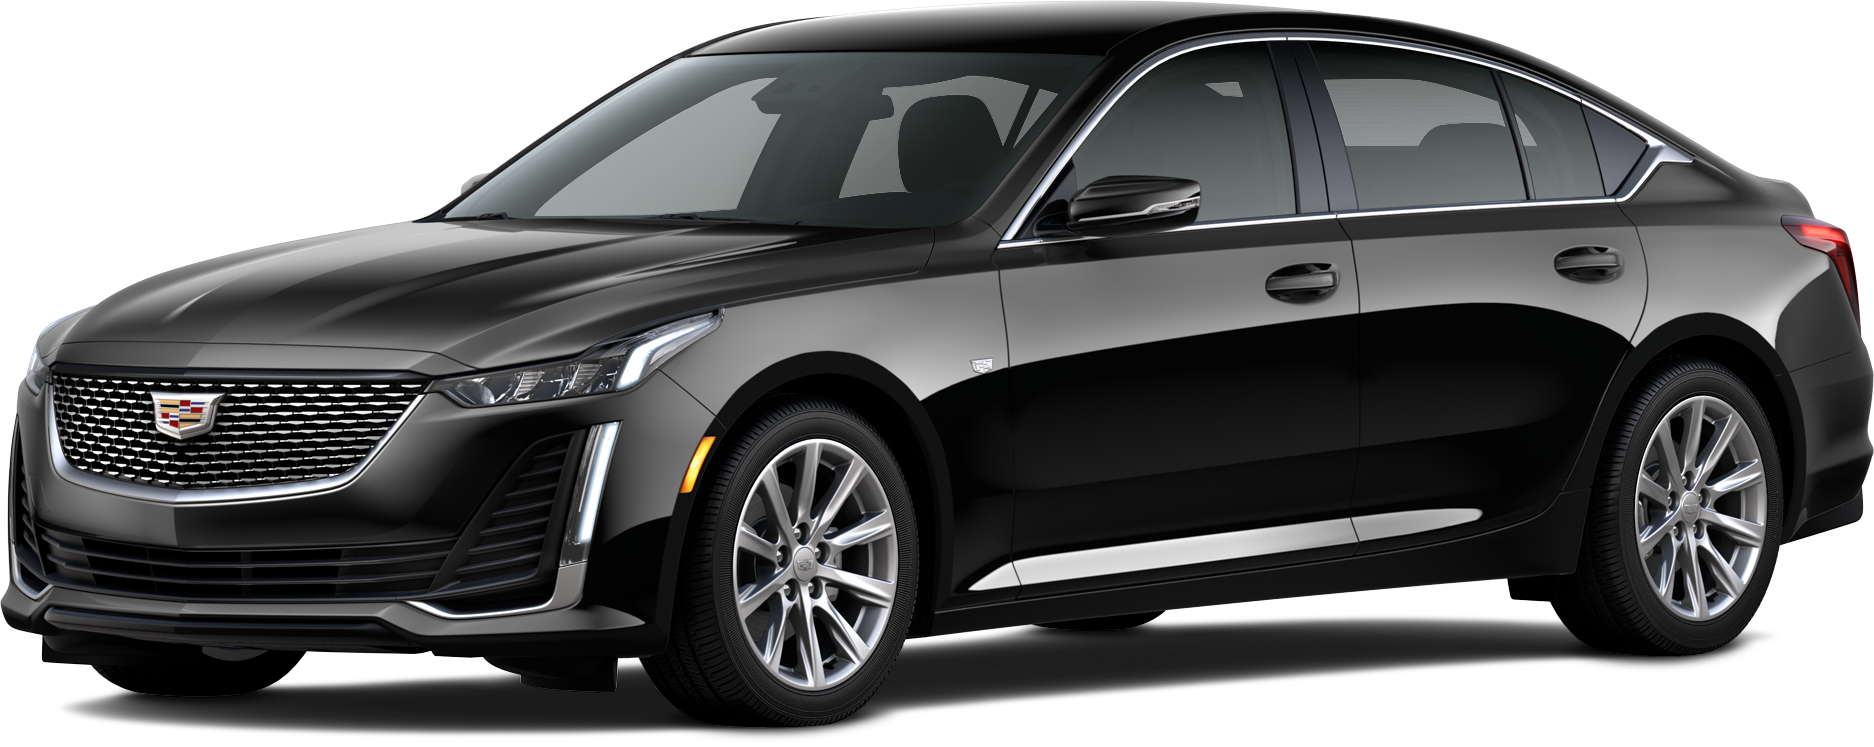 2020 CADILLAC CT5 Incentives, Specials & Offers in ANN ...